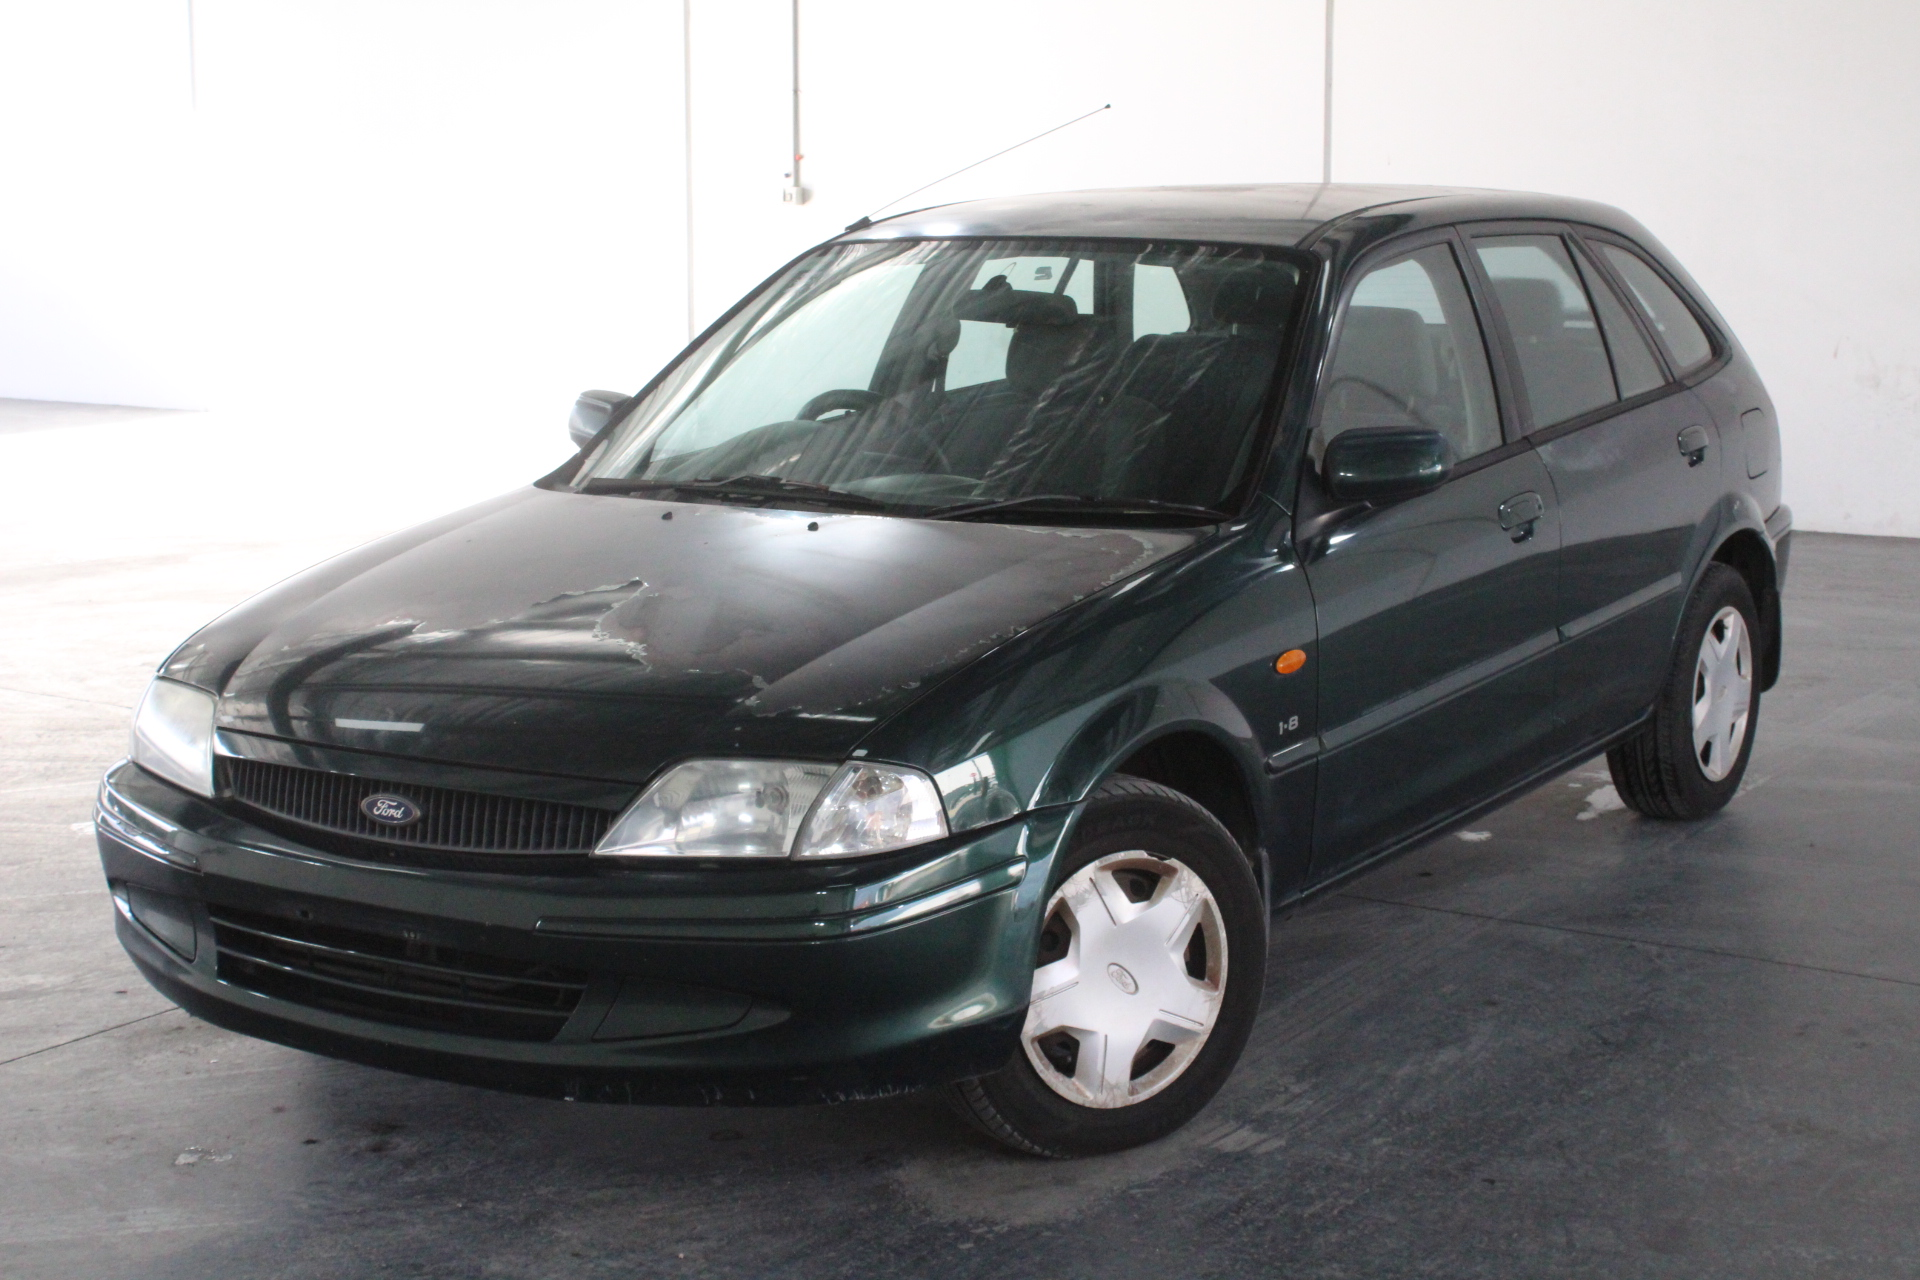 1999 Ford Laser GLXI KN Automatic Hatchback